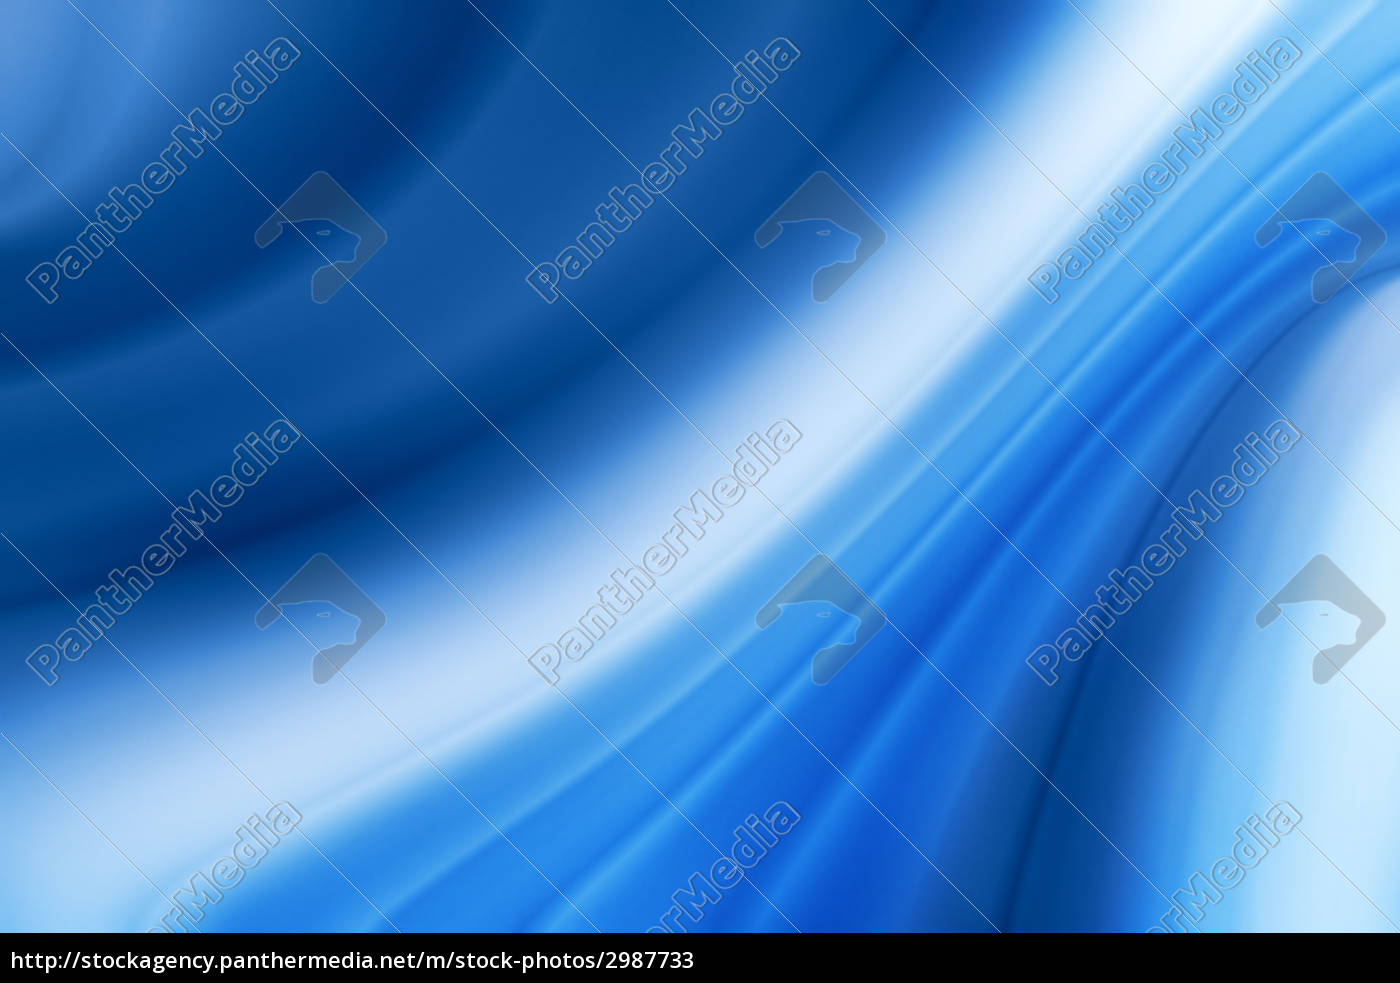 blue, background - 2987733